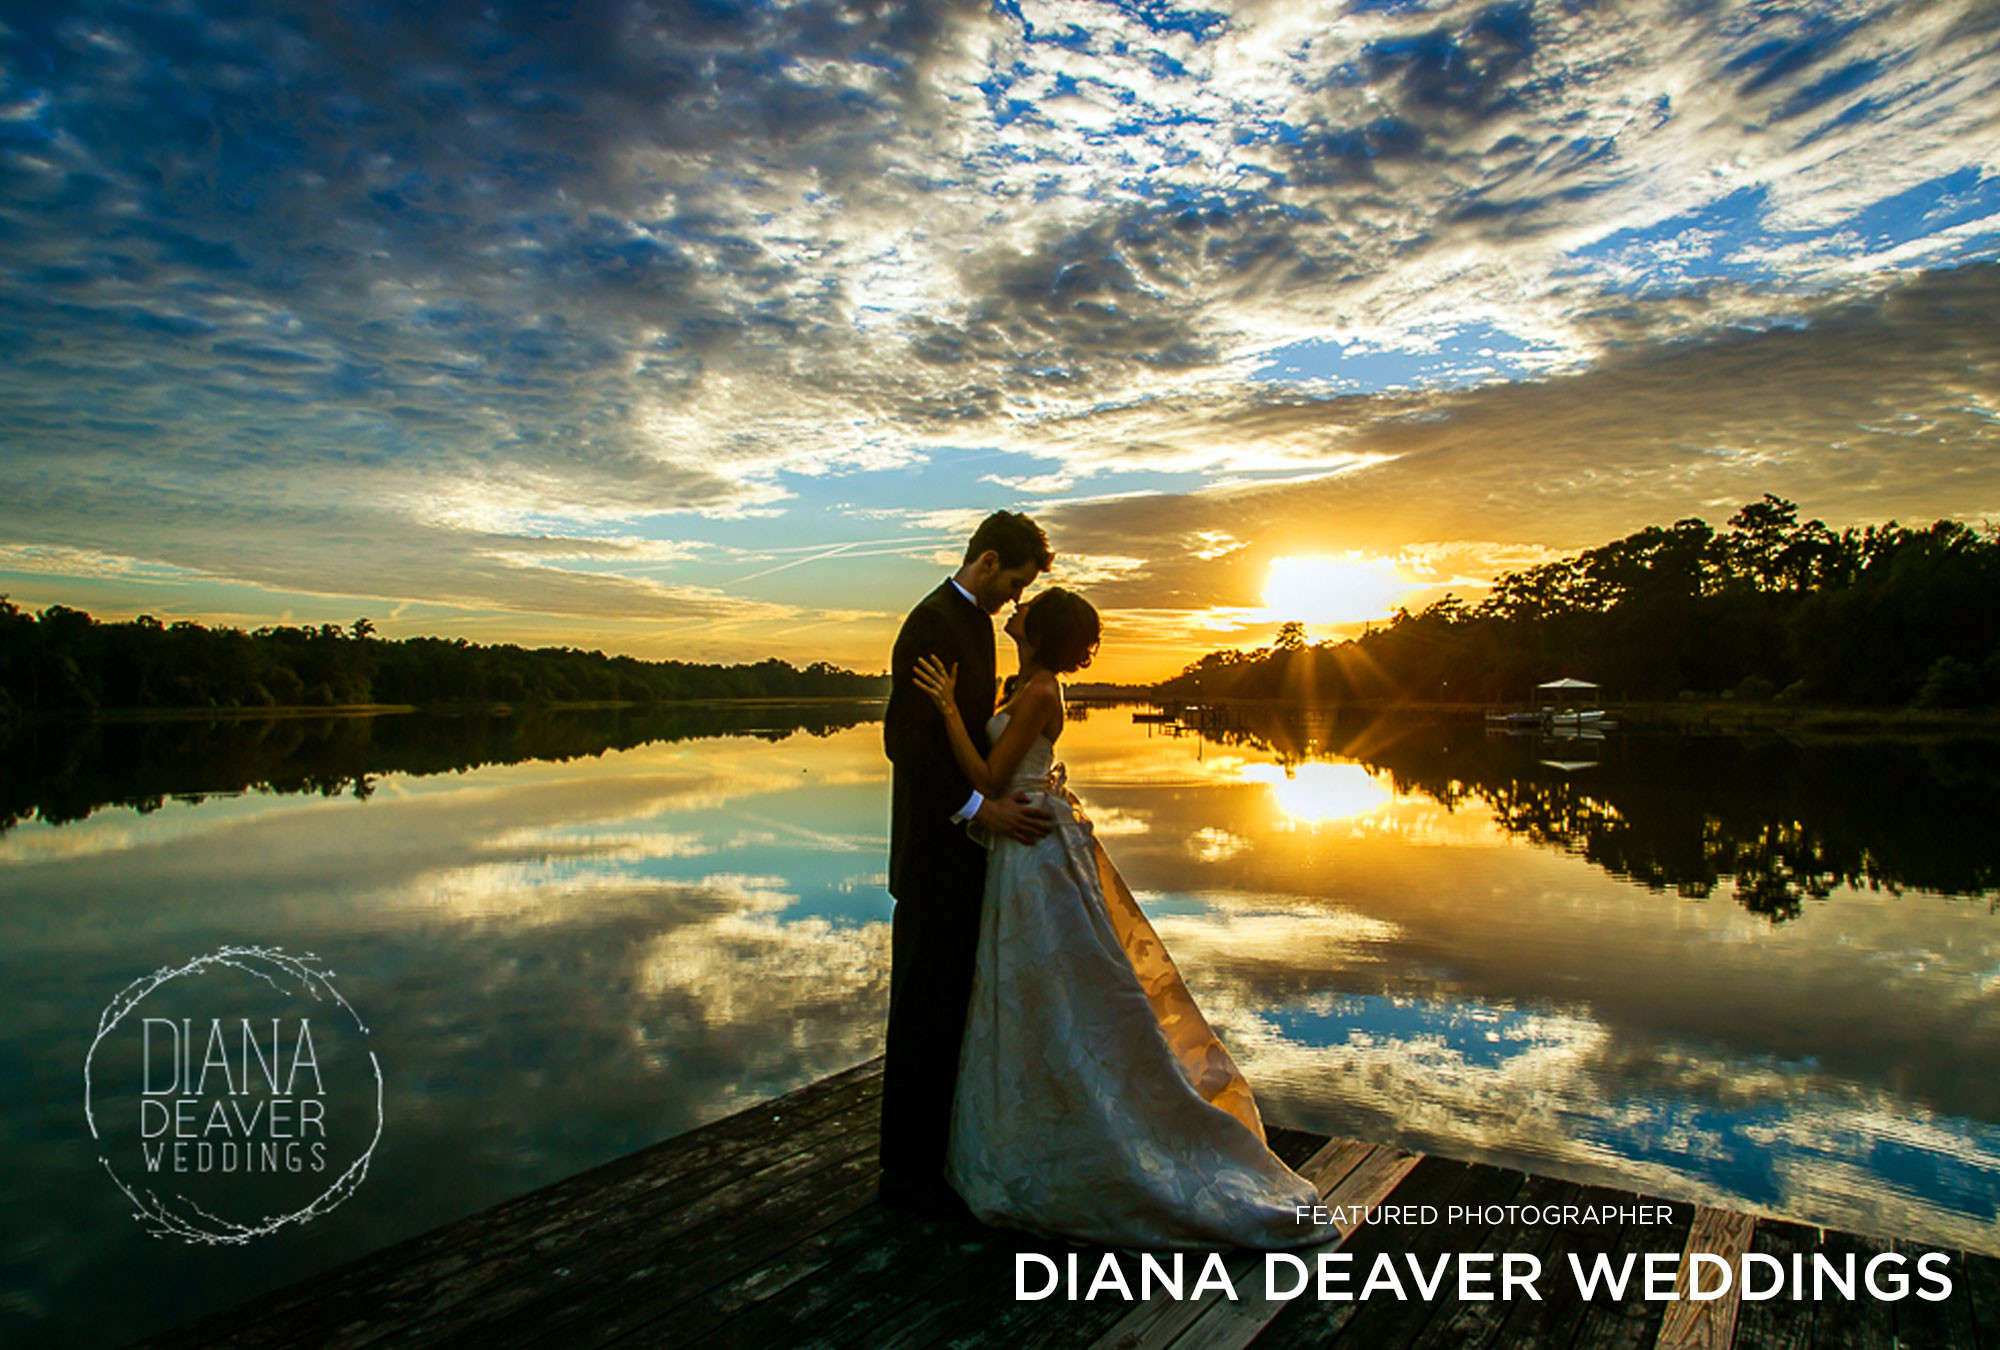 Diana Deaver Weddings - Featured Photographer